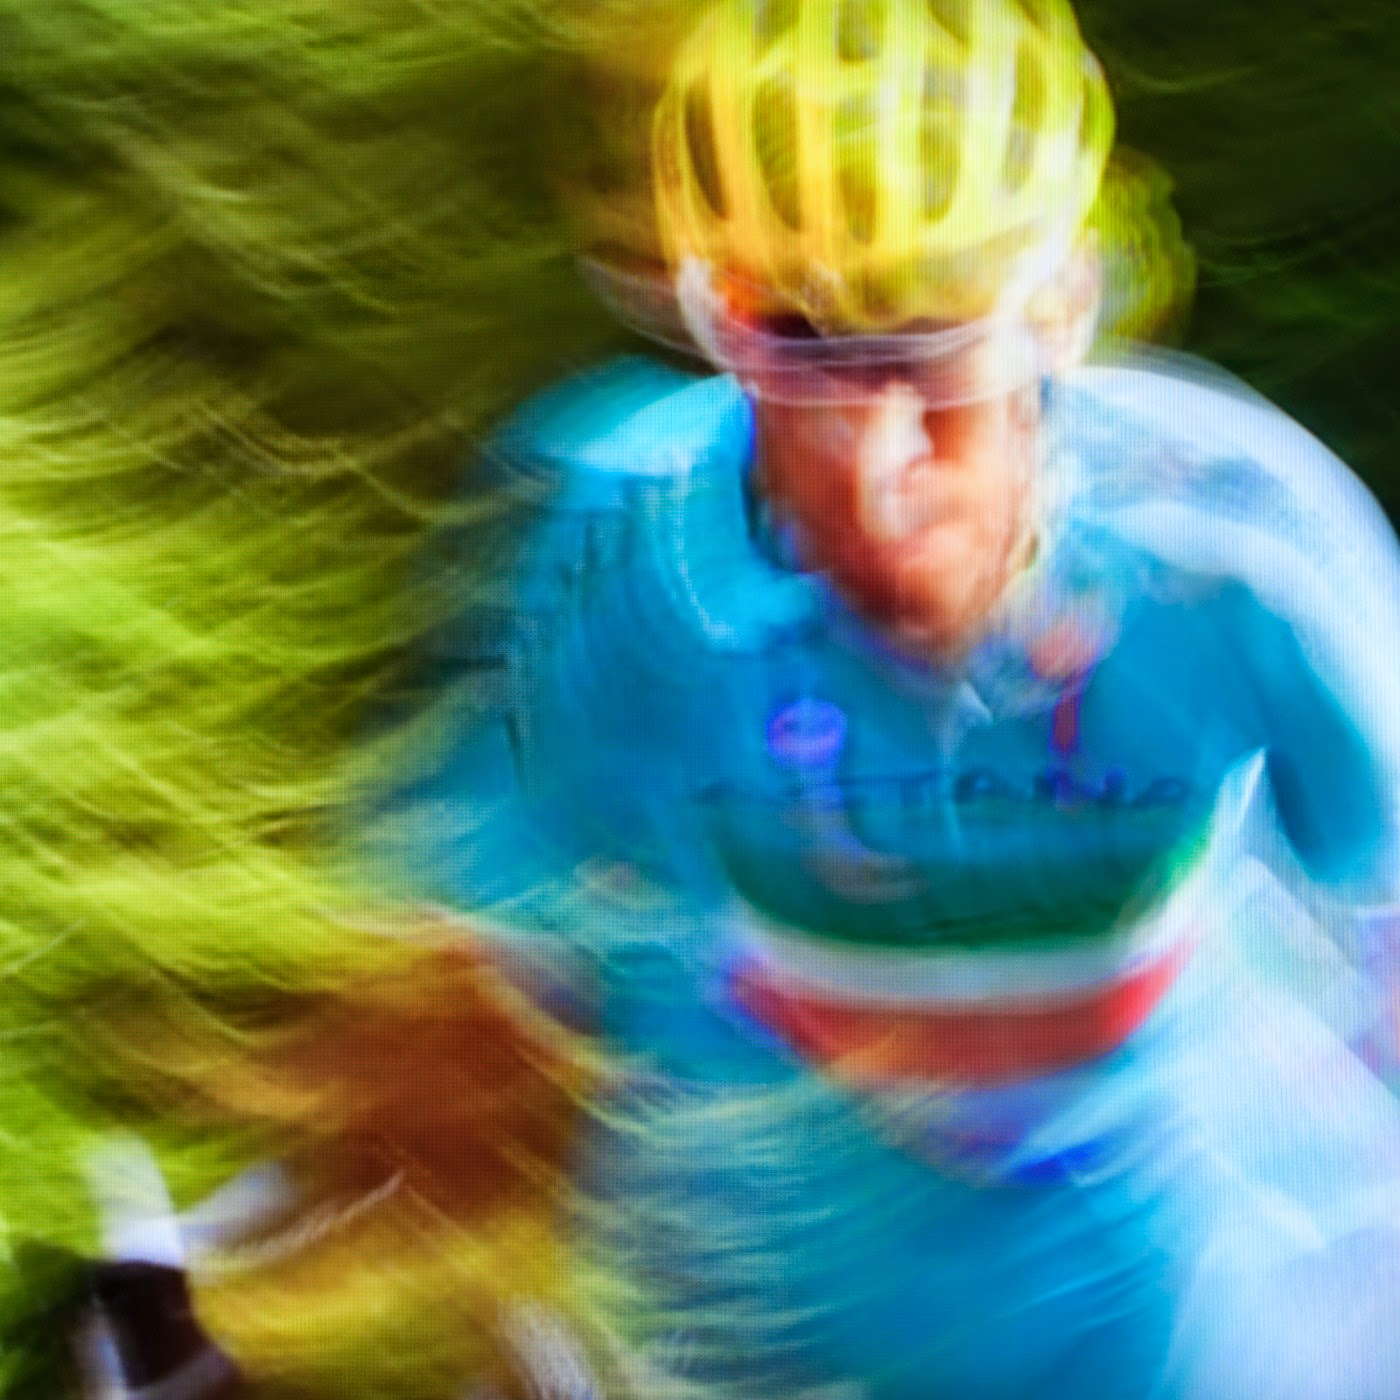 le tour de france, motion blur, blur, abstract, abstraction, tim macauley, photographic art, you won't see this at MoMA, appropriation, found imagery, le tour 2014, tv footage, portrait, timothy Macauley, the light monkey collective, grand cycling tour